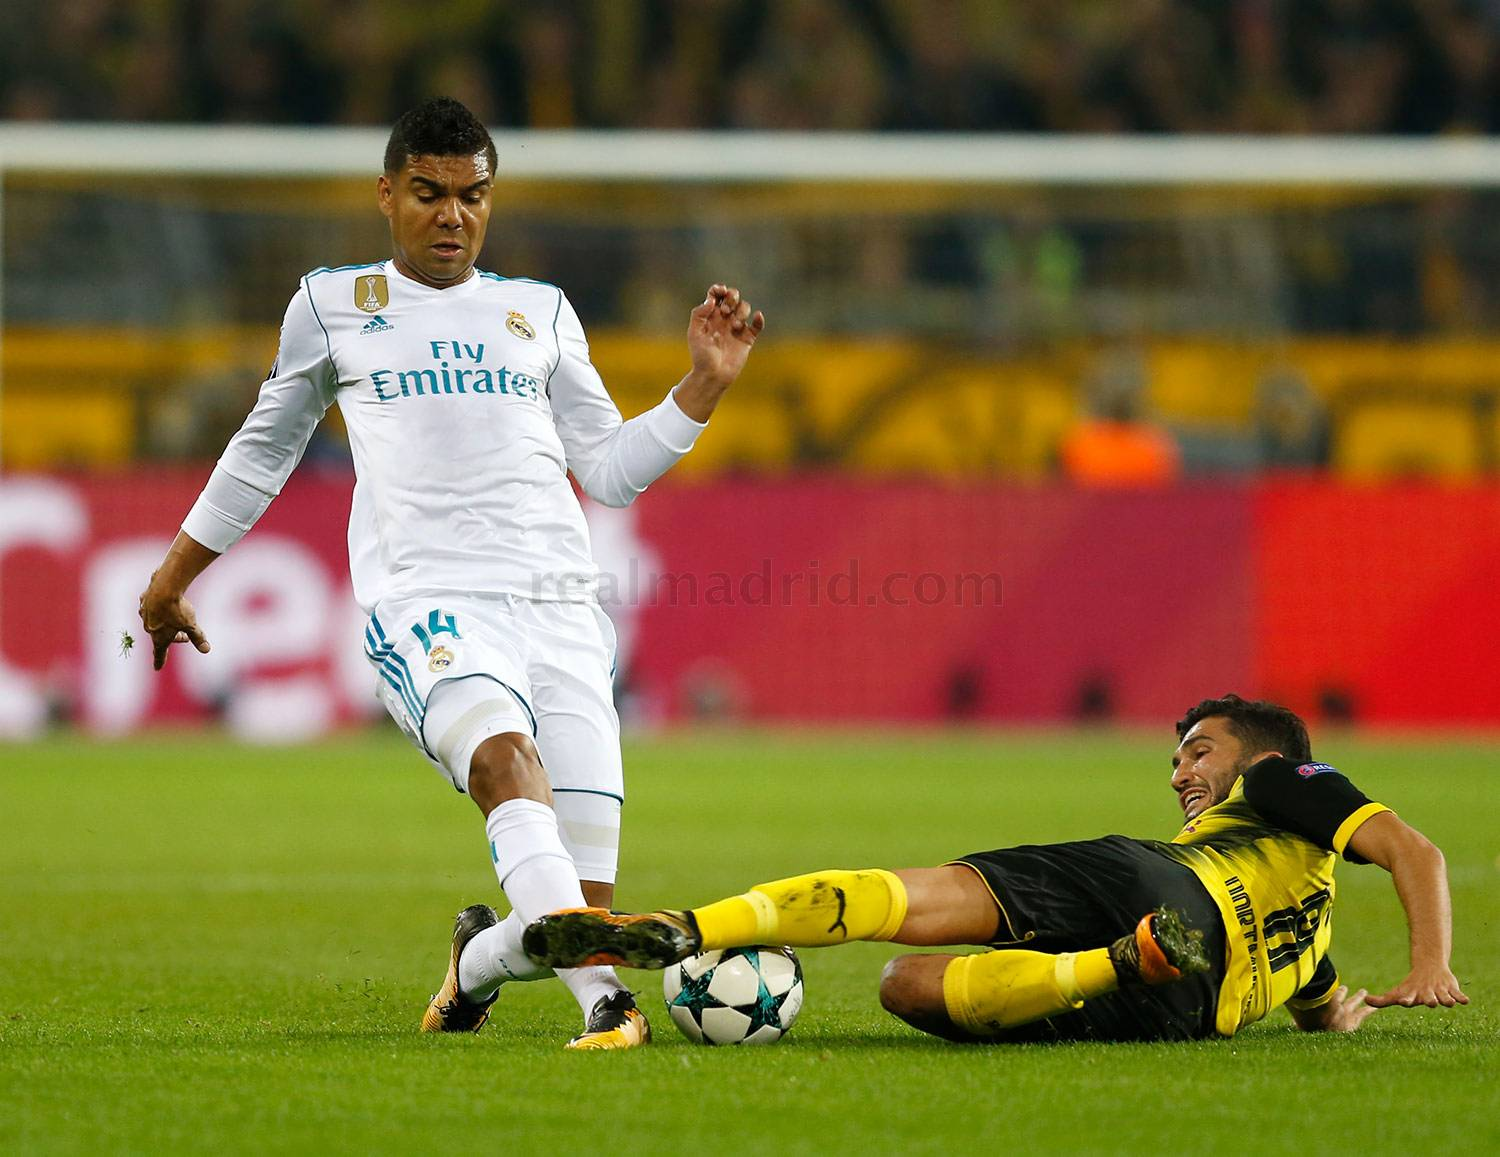 Real Madrid - Borussia Dortmund - Real Madrid - 26-09-2017